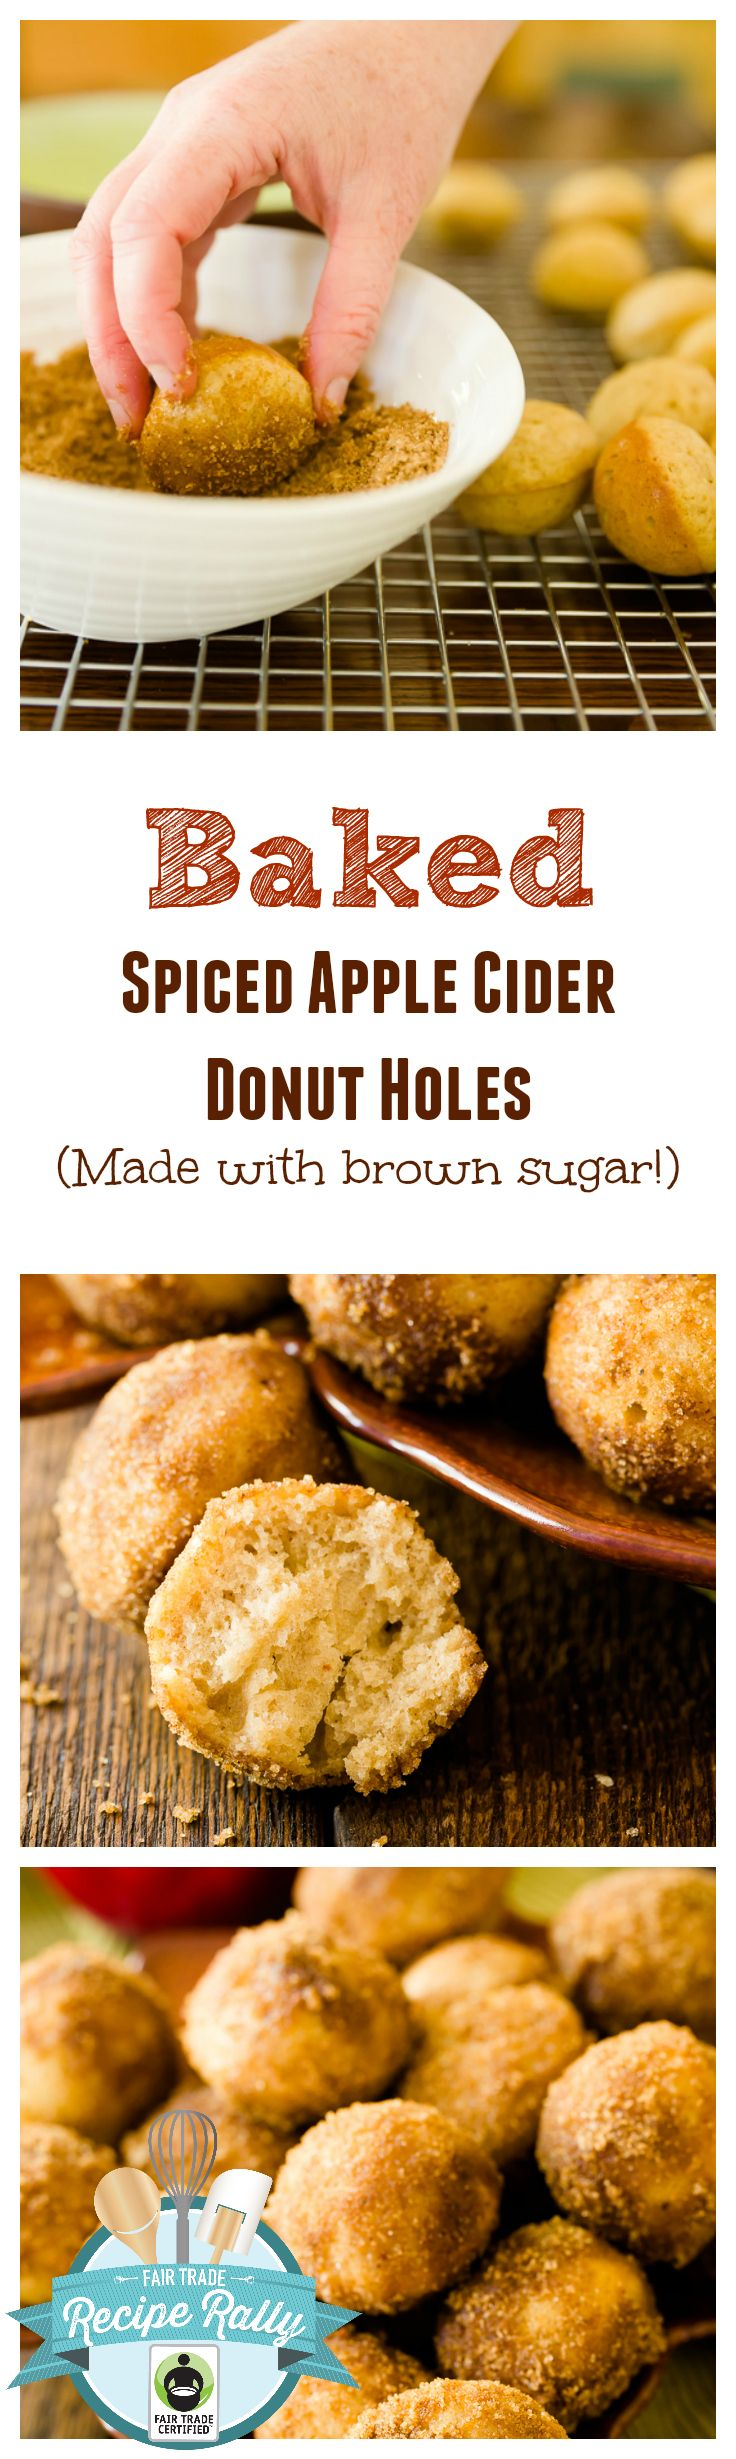 Apple Cider Donuts - Baked Donut Recipe with Step-by-Step Instructions